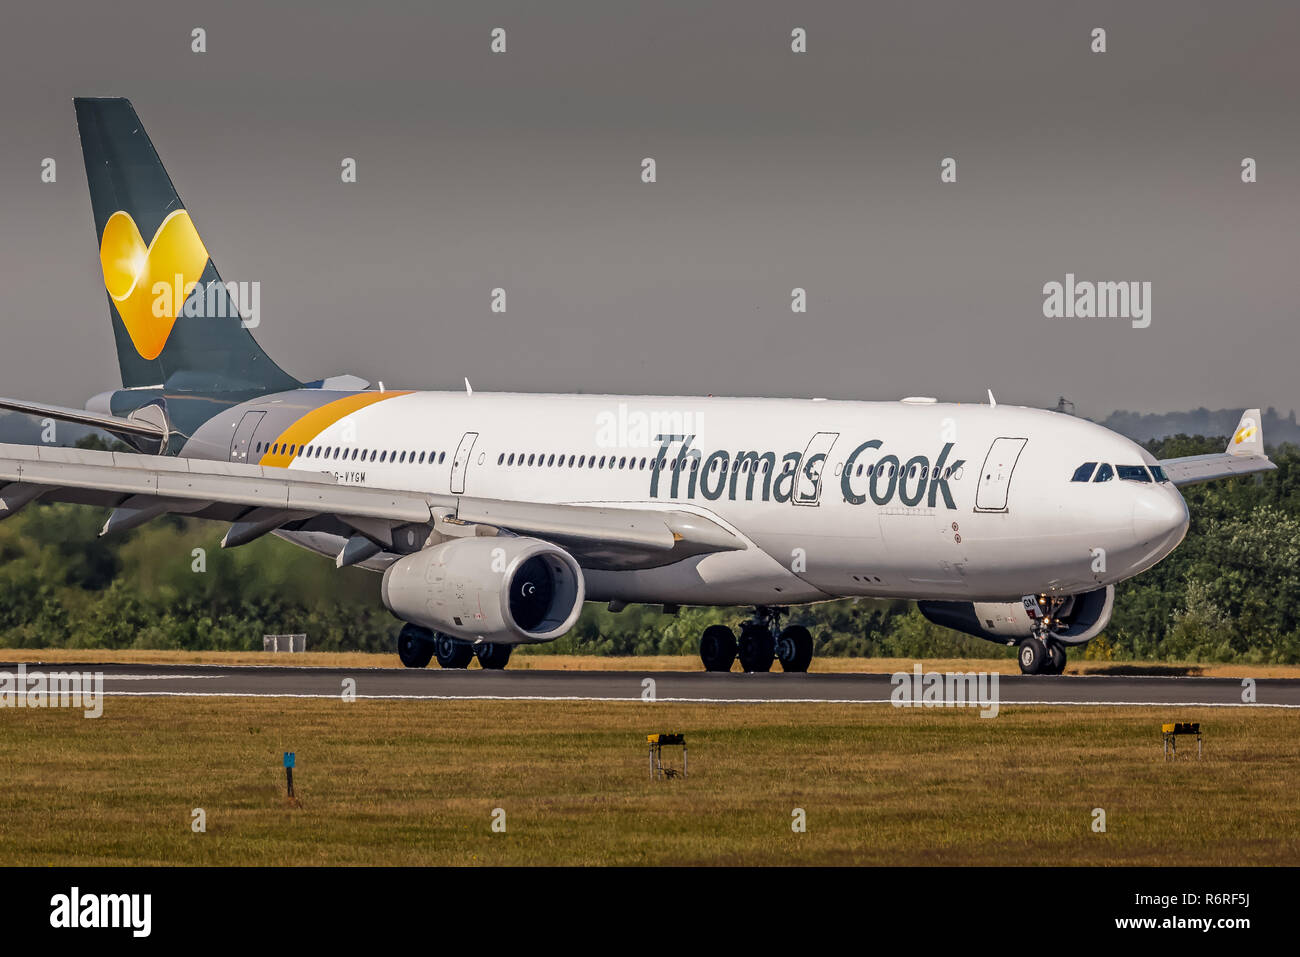 A Thomas Cook airlines Airbus A330, registration G-VYGM, taking back to the terminal at Manchester Airport in England after landing. - Stock Image